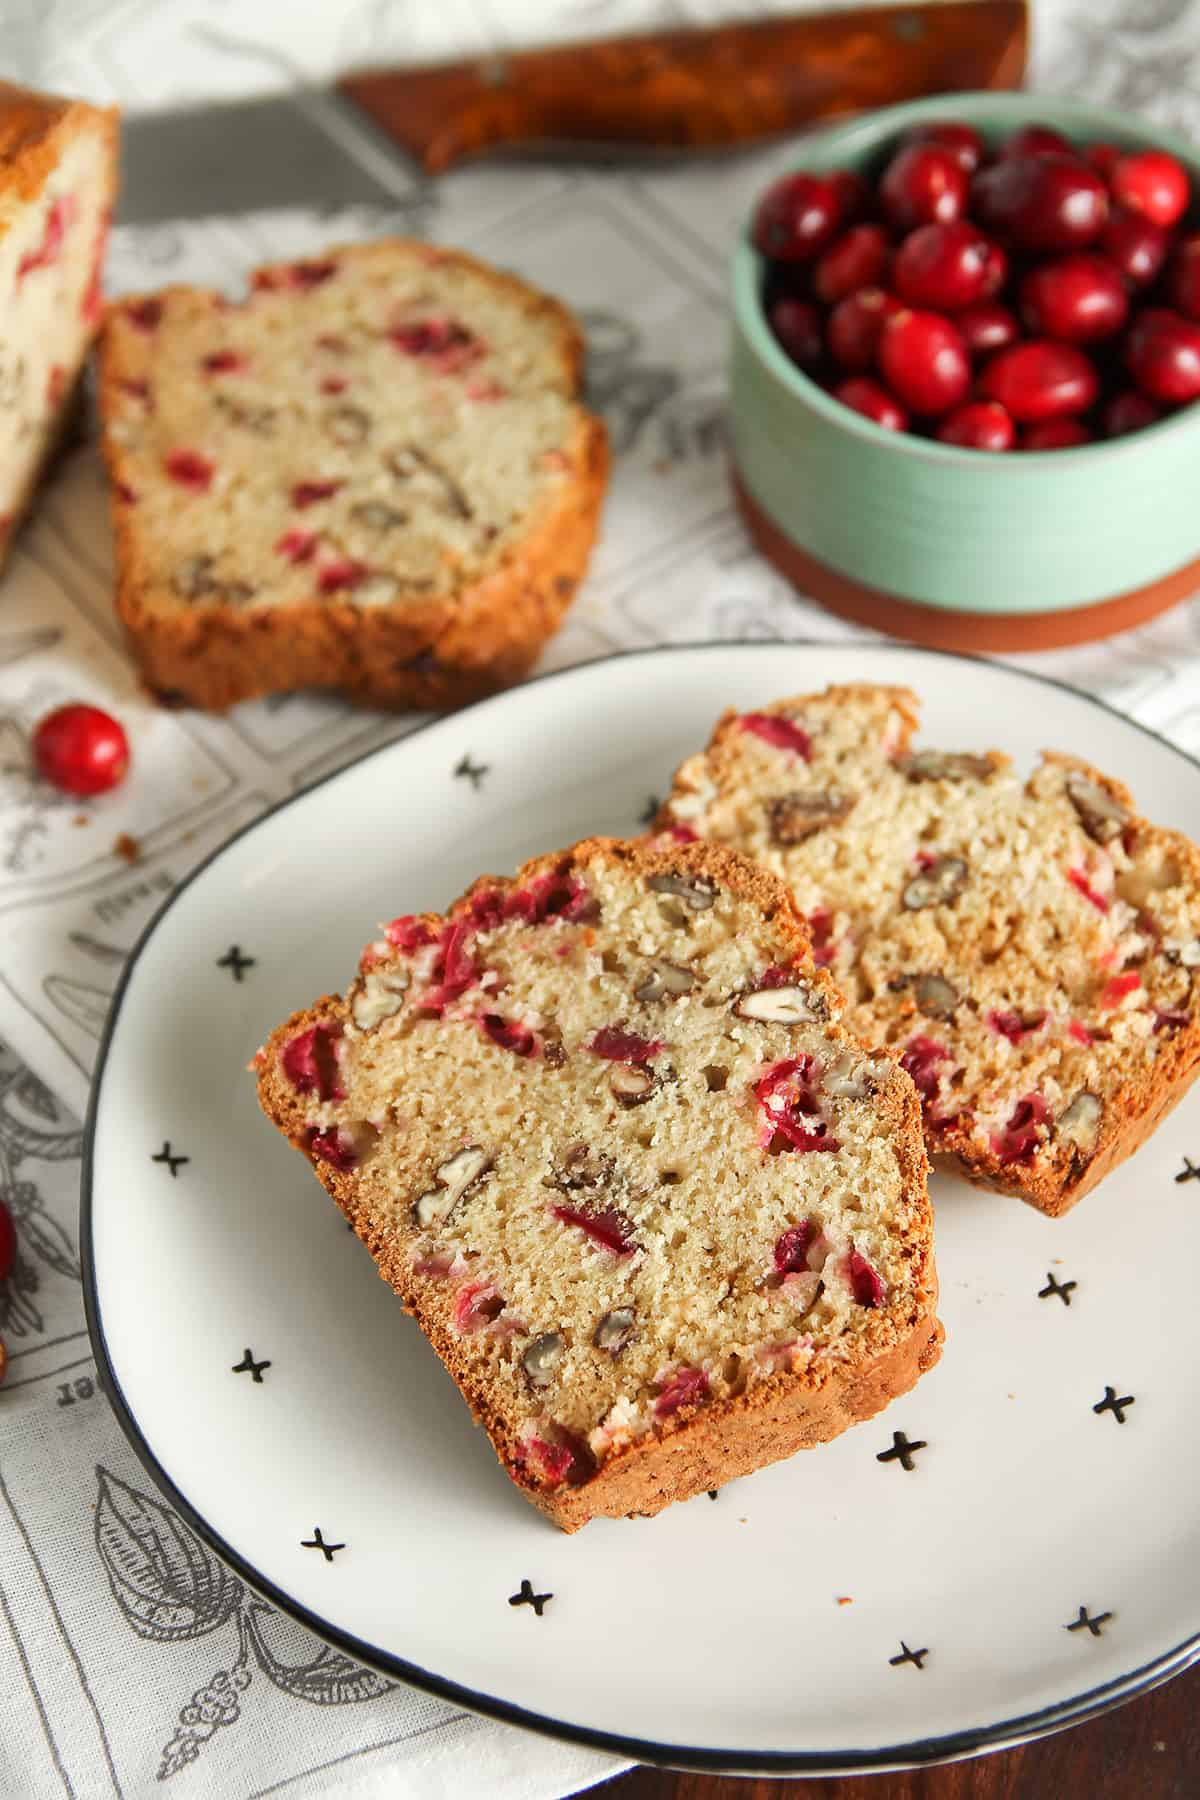 Full of fresh cranberries and pecans, Cranberry Nut Bread is an easy quick bread you'll want to make again and again.